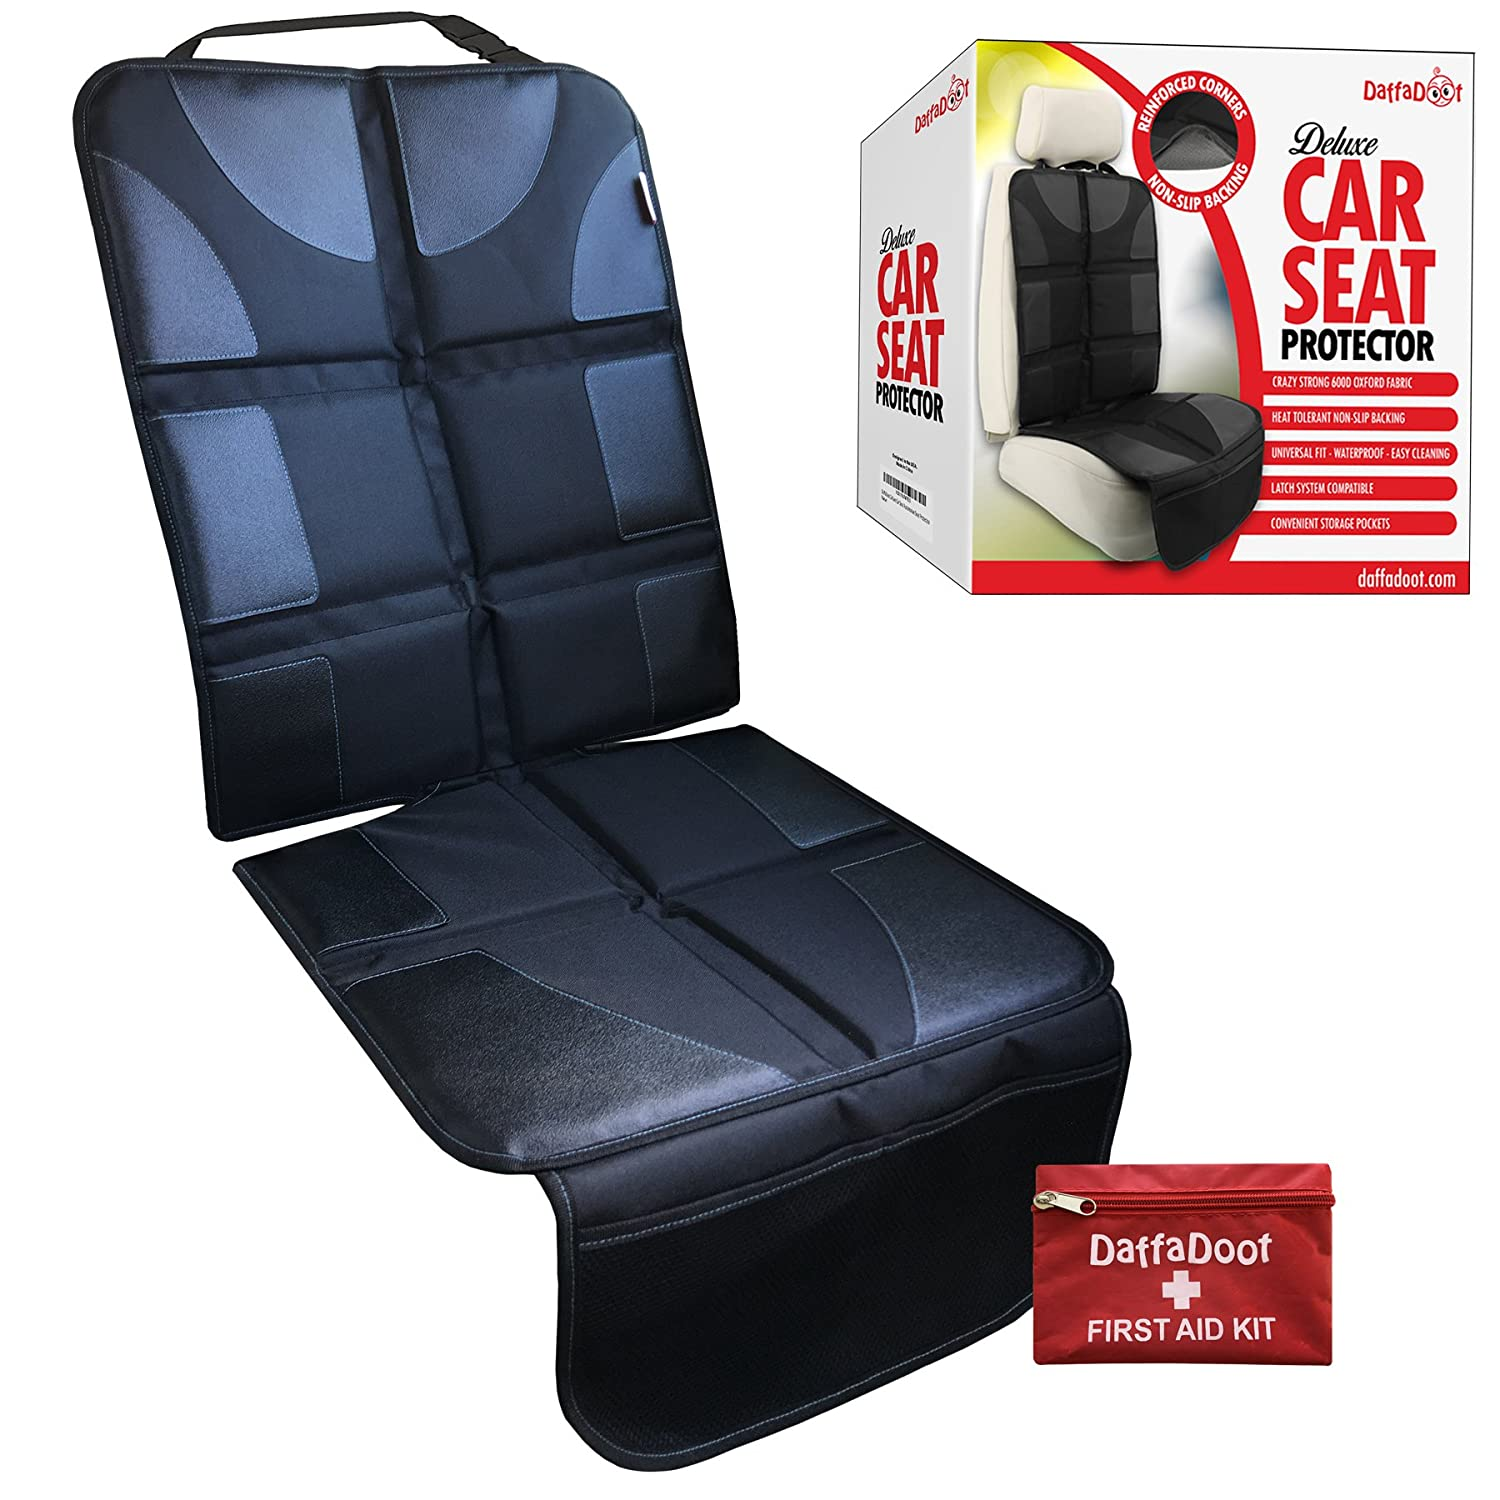 (NEW 2018) Deluxe Auto Seat Protector Fits Under Baby Car Seat or Booster- Universal Fit - Complete Heavy Duty Coverage - Waterproof Anti-Slip Color-Fast Heat Resistant - Safely & Effectively Protects DaffaDoot CSP-DLX01